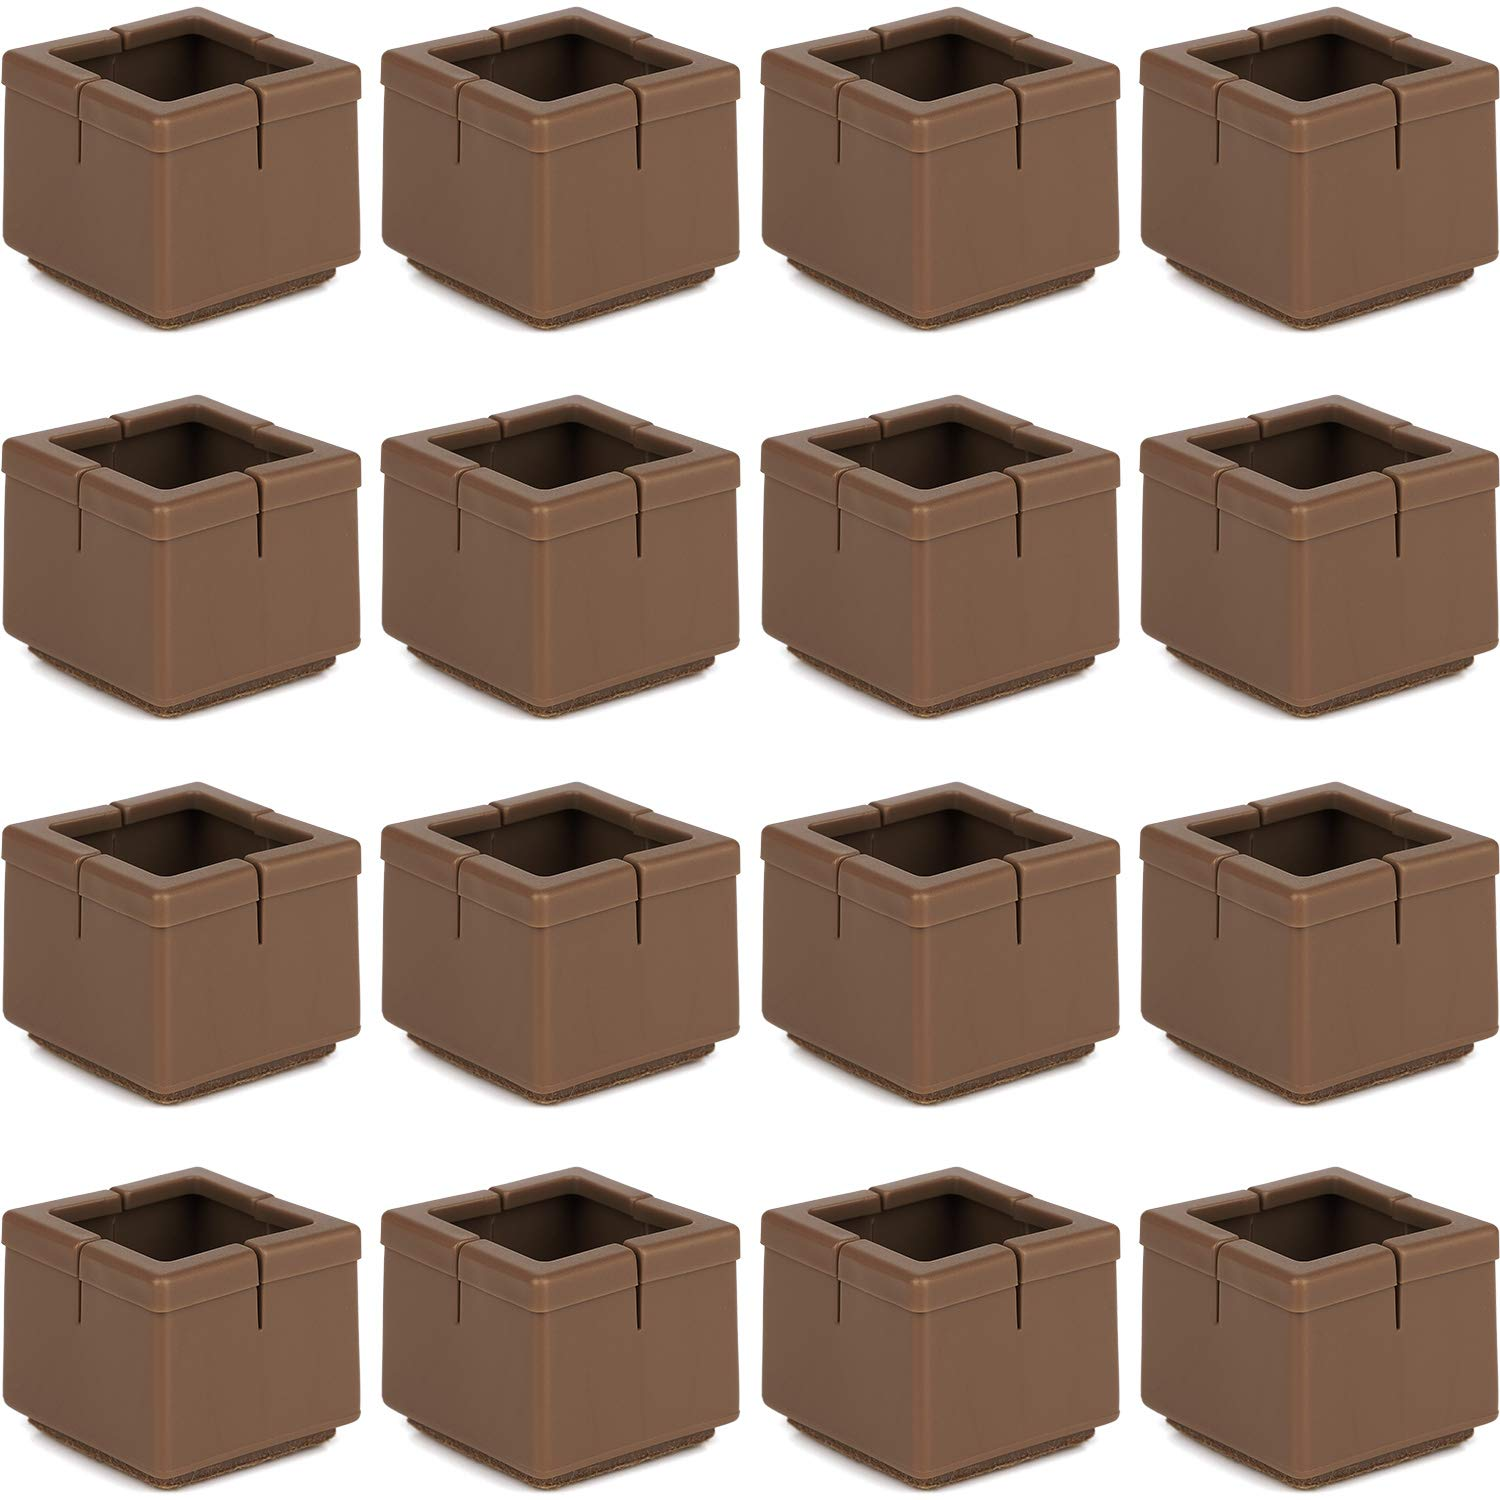 """Anwenk 16Pack Square Chair Leg Caps Furniture Leg Floor Protectors 1 1/4 to 1 3/8"""" with Felt Pads, Color Brown"""